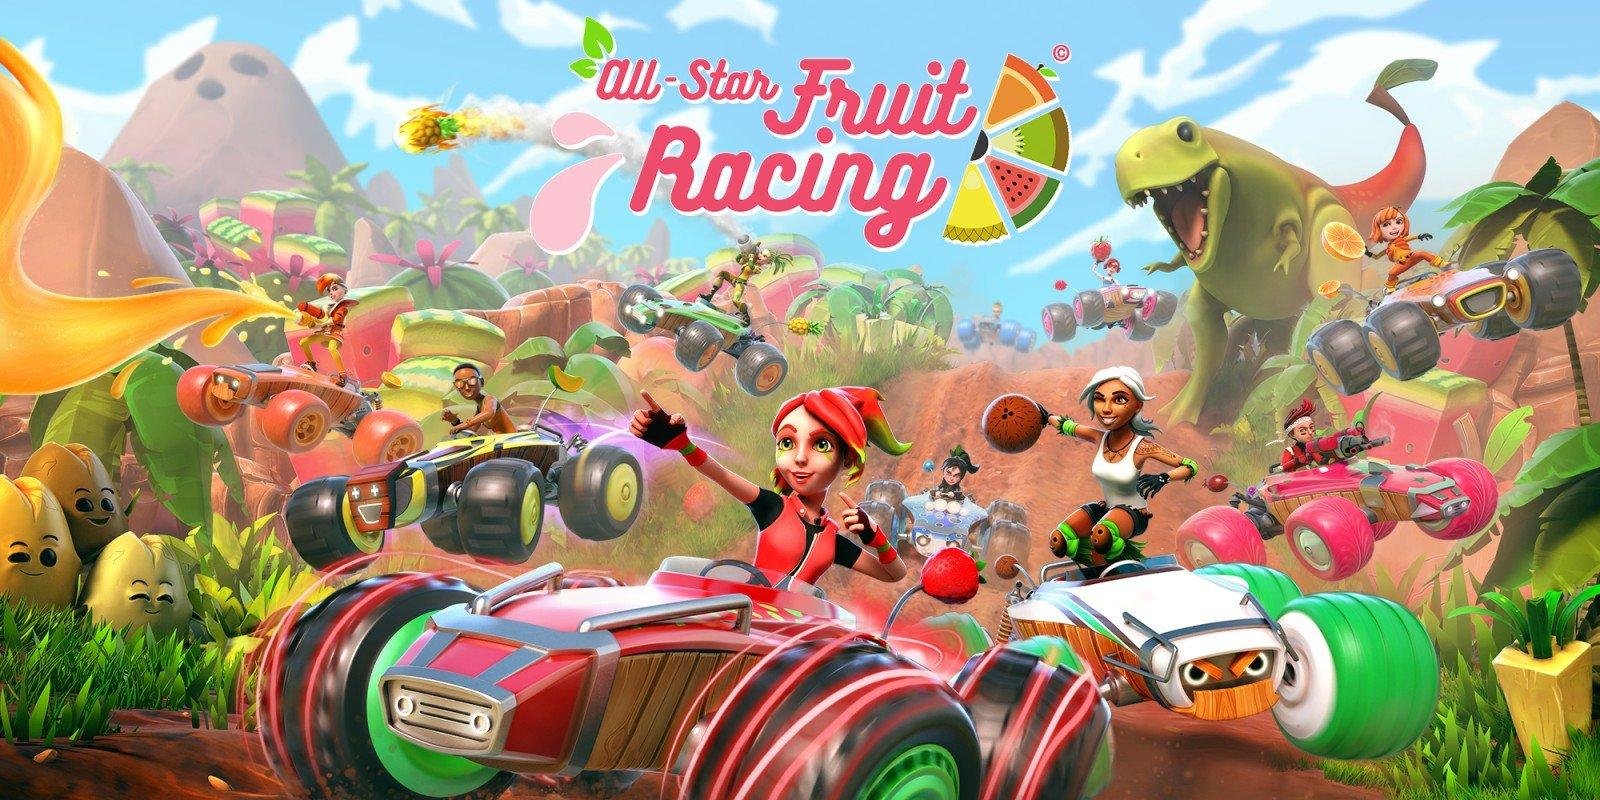 All Star Fruit Rcing VR candidato ai TIGA Awards